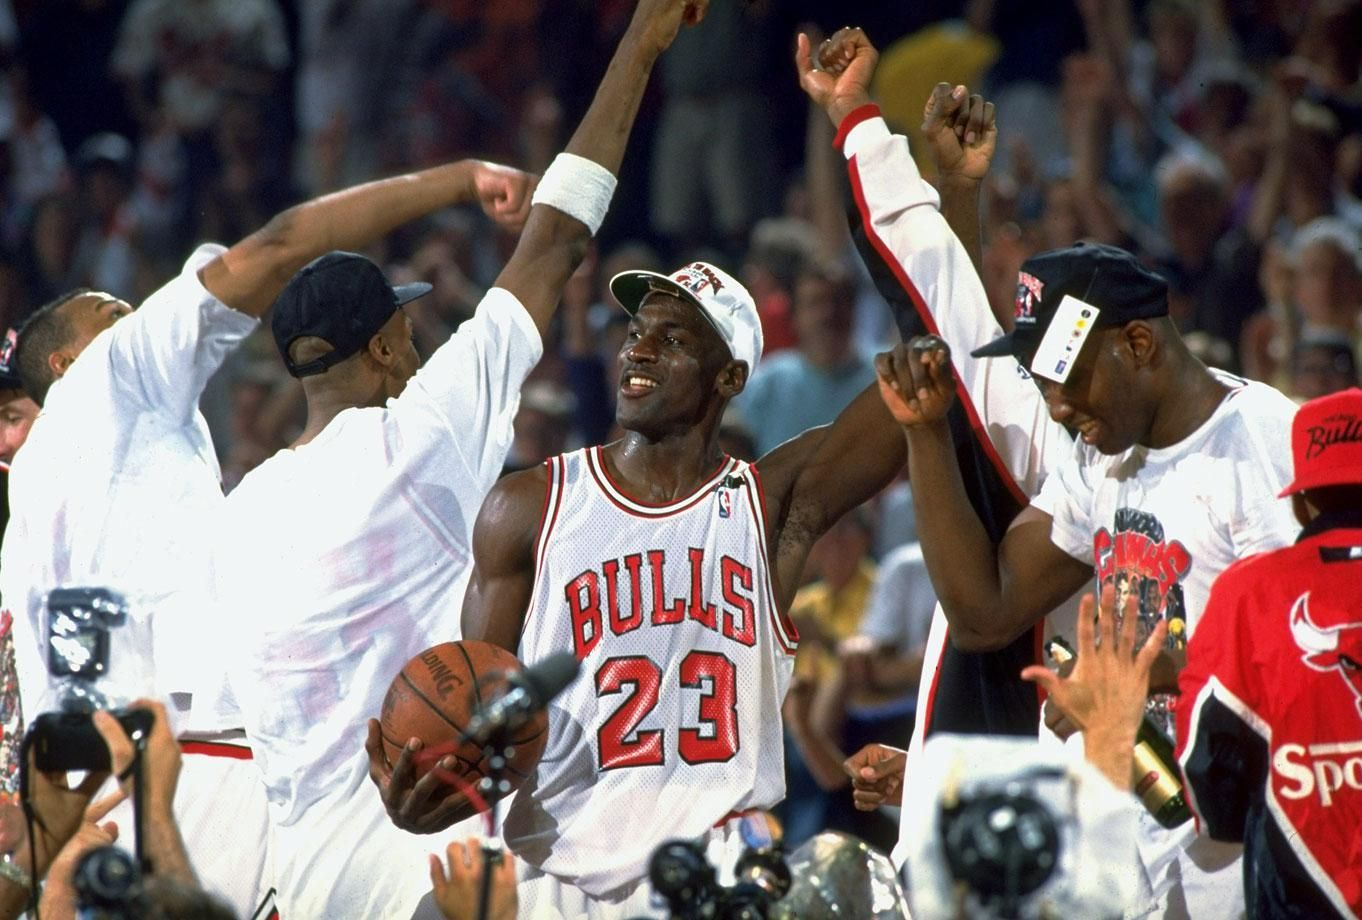 Sneakers of the champion: what did Jordan wear when he won the NBA rings?